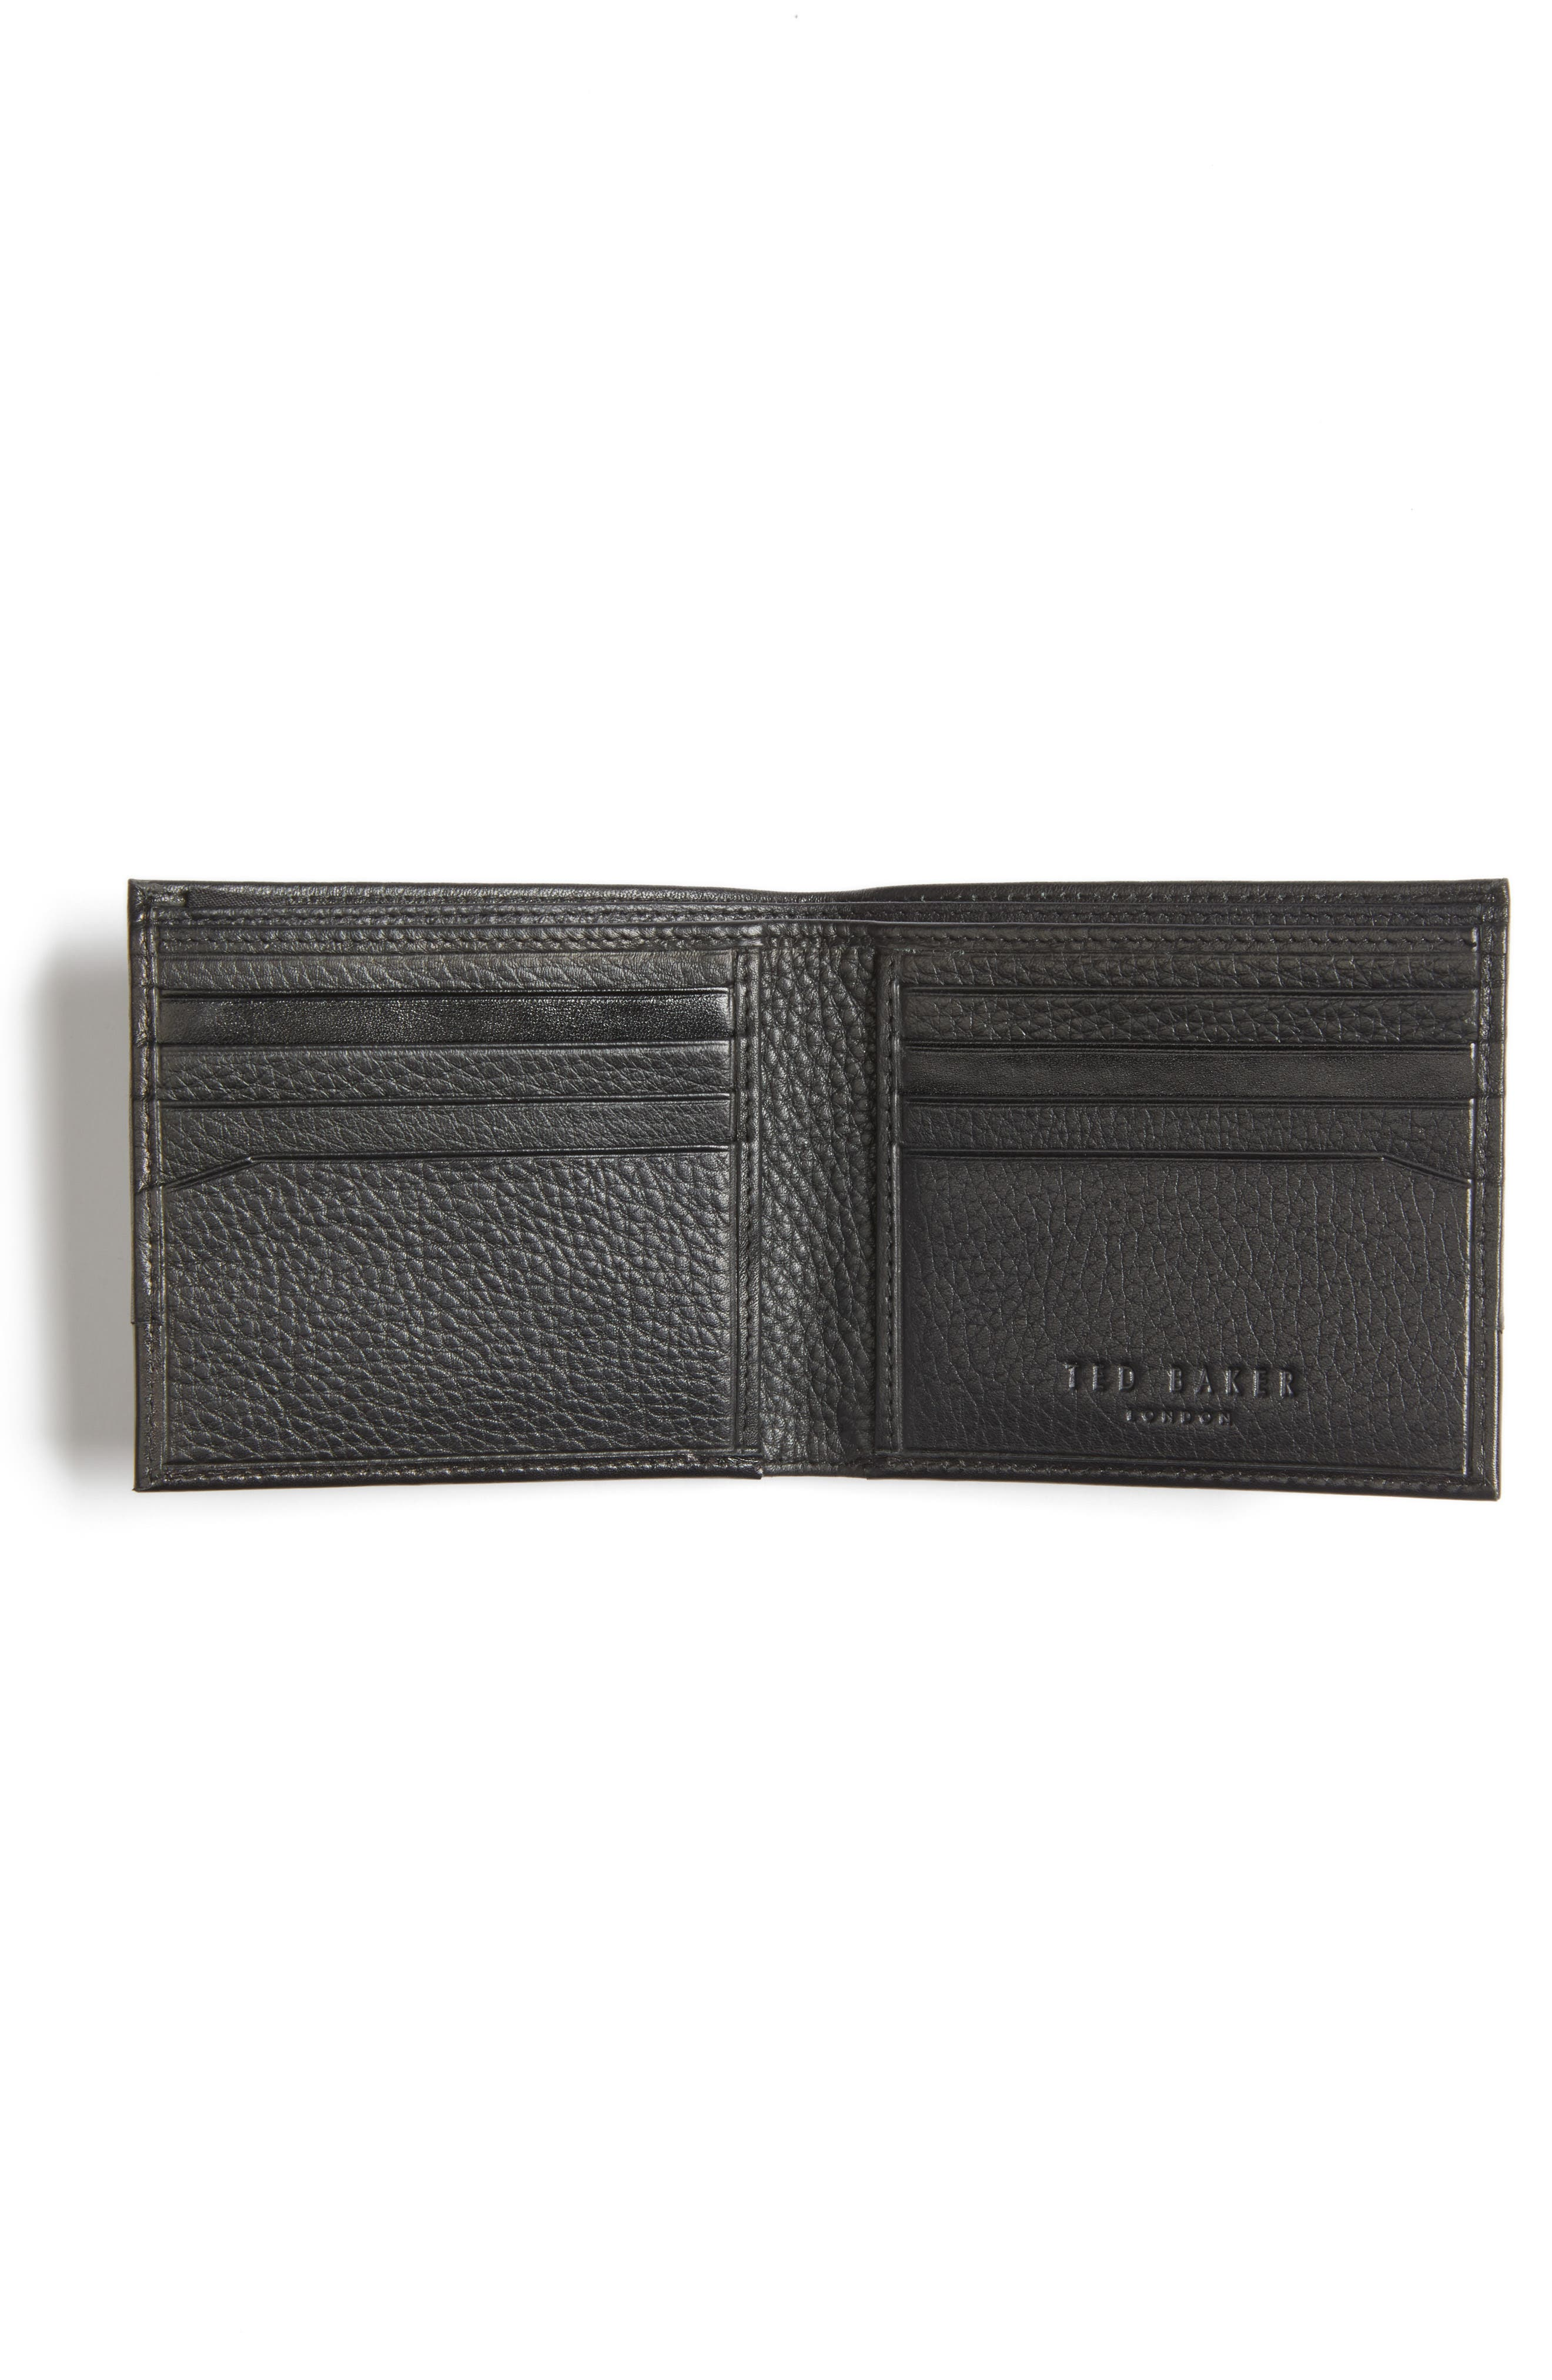 Mixdup Leather Wallet,                             Alternate thumbnail 2, color,